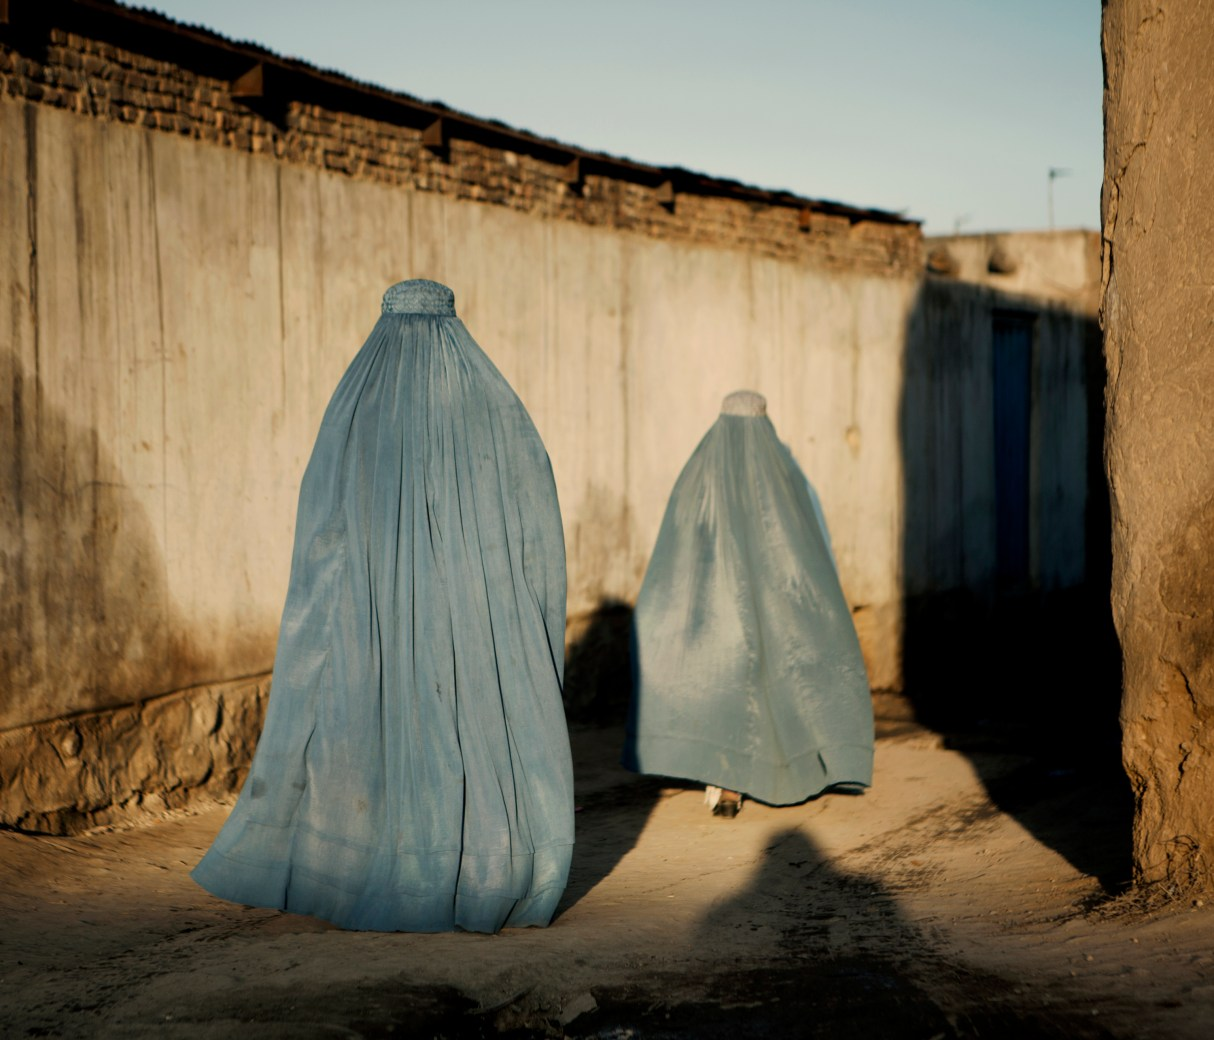 Two women wearing blue burqas walk through an alleyway after leaving a market in Lashkar Gah. In June 2011, President Obama announced his plan to begin the withdrawal of US troops from Afghanistan, but there is currently no end date for the war in the troubled country. Helmand is the largest province in Afghanistan, and the heart of the war against terror. Commanders on the ground have described the situation as the most brutal conflict the British Army has been involved in since the Korean War. Much of the fighting between NATO and Taliban forces is taking place in this province and Helmand is a true Taliban stronghold. The Helmand River flows through the mainly desert region. With these images I am trying to show a softer side to this troubled area of Afghanistan.